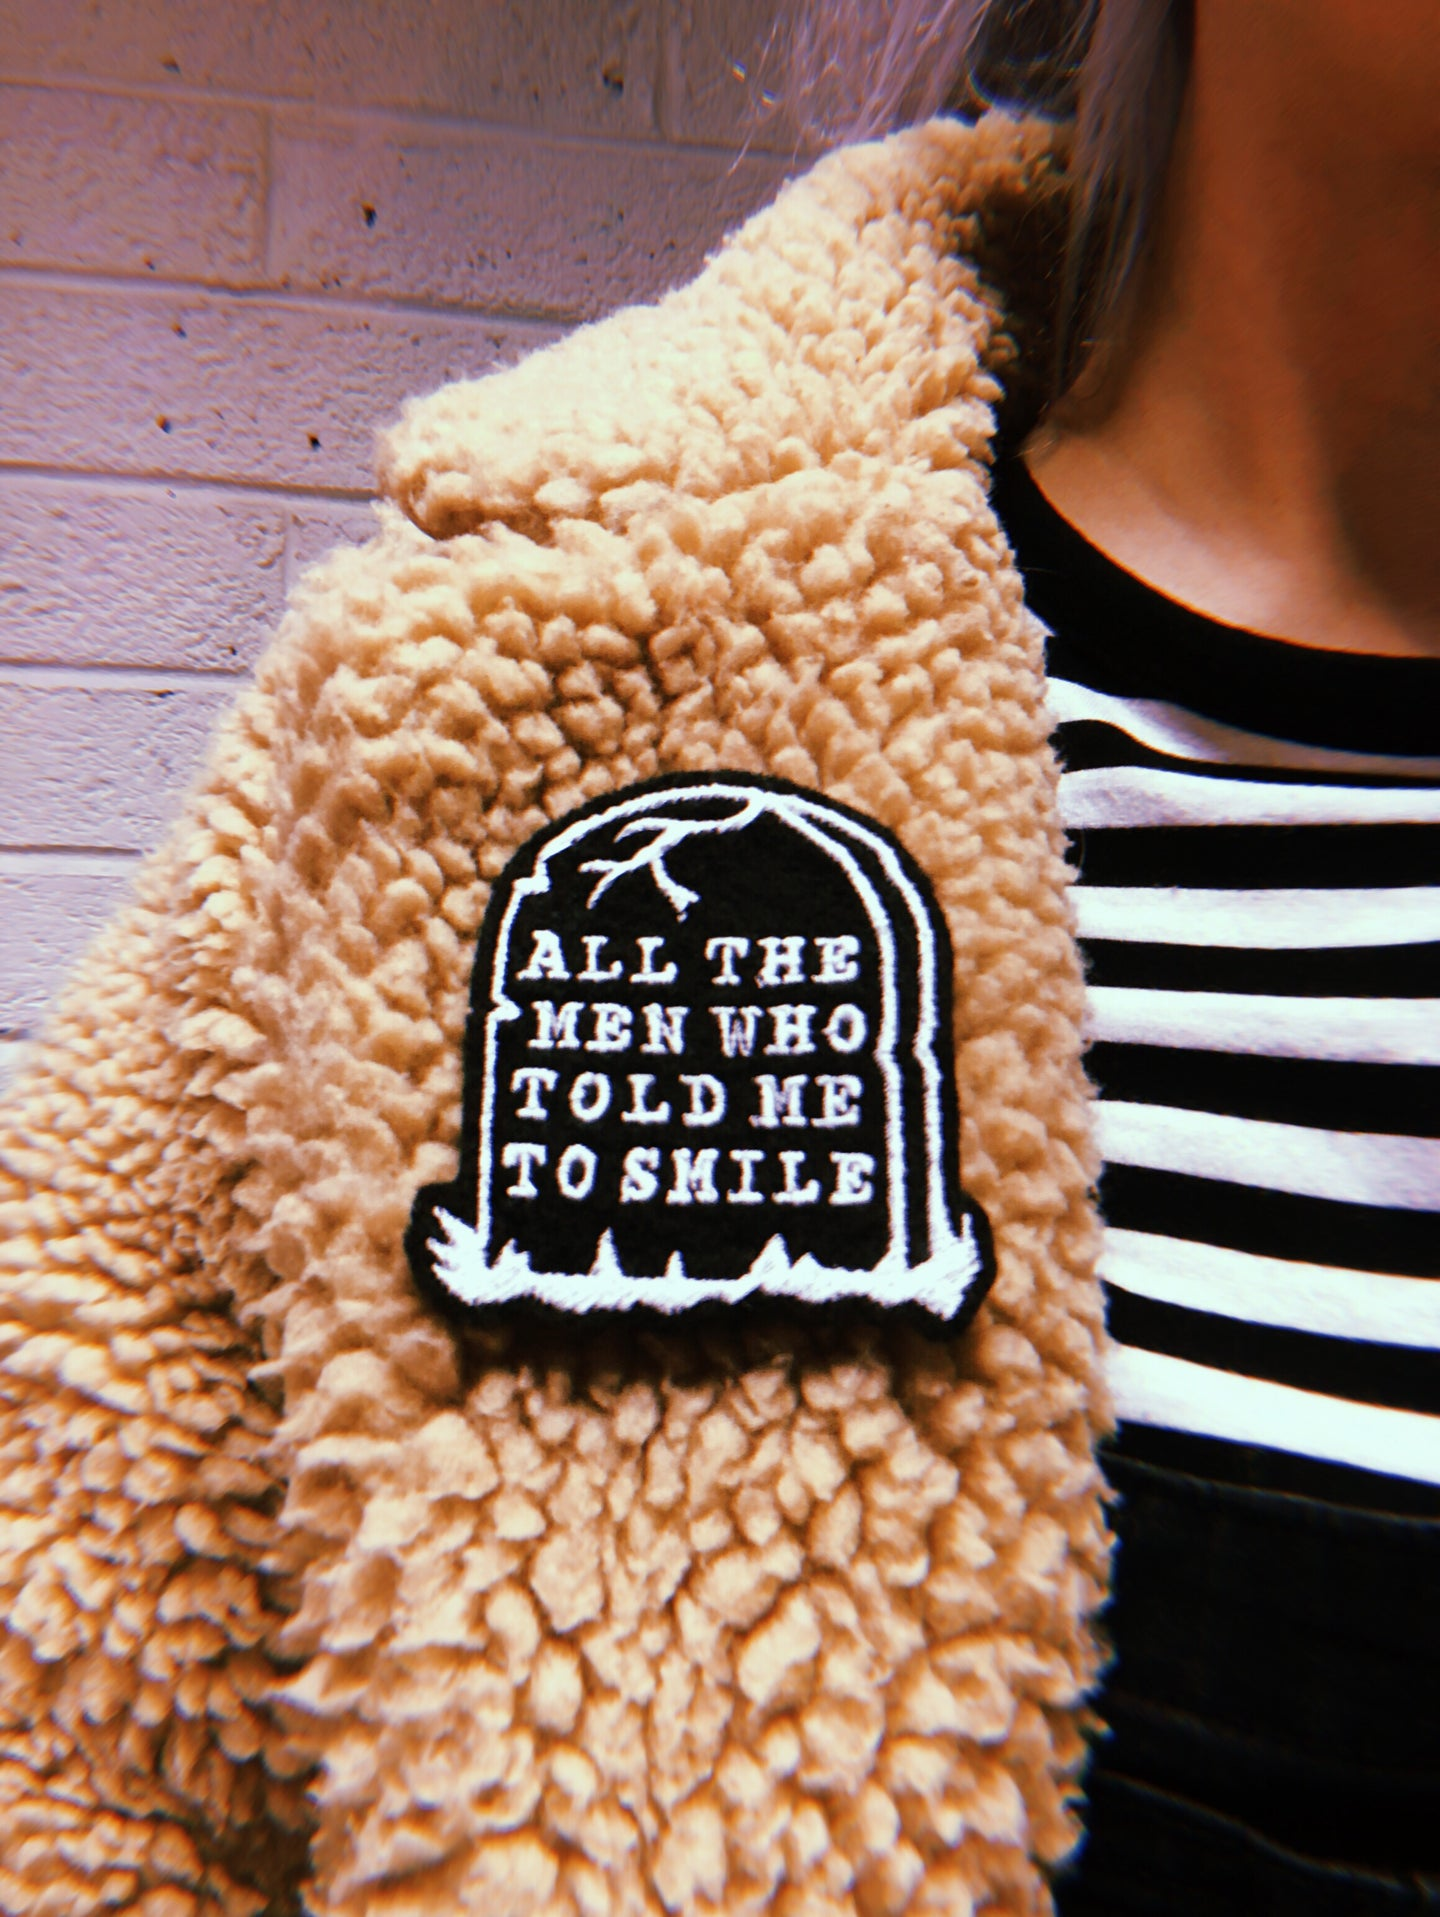 RIP All The Men Who Told Me To Smile - Embroidery Patches